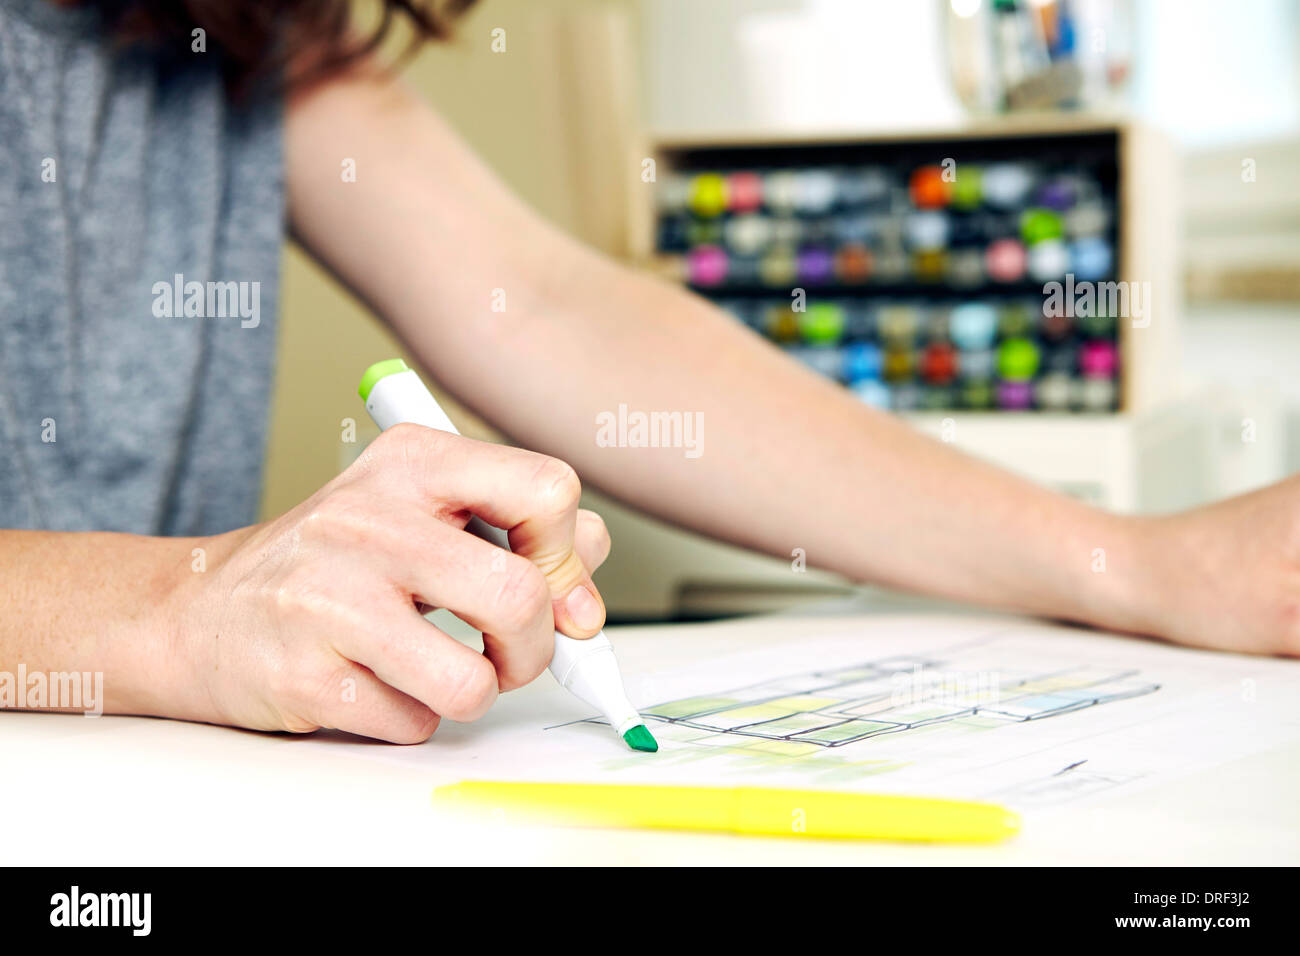 Woman works at desk, making notes, Munich, Bavaria, Germany - Stock Image